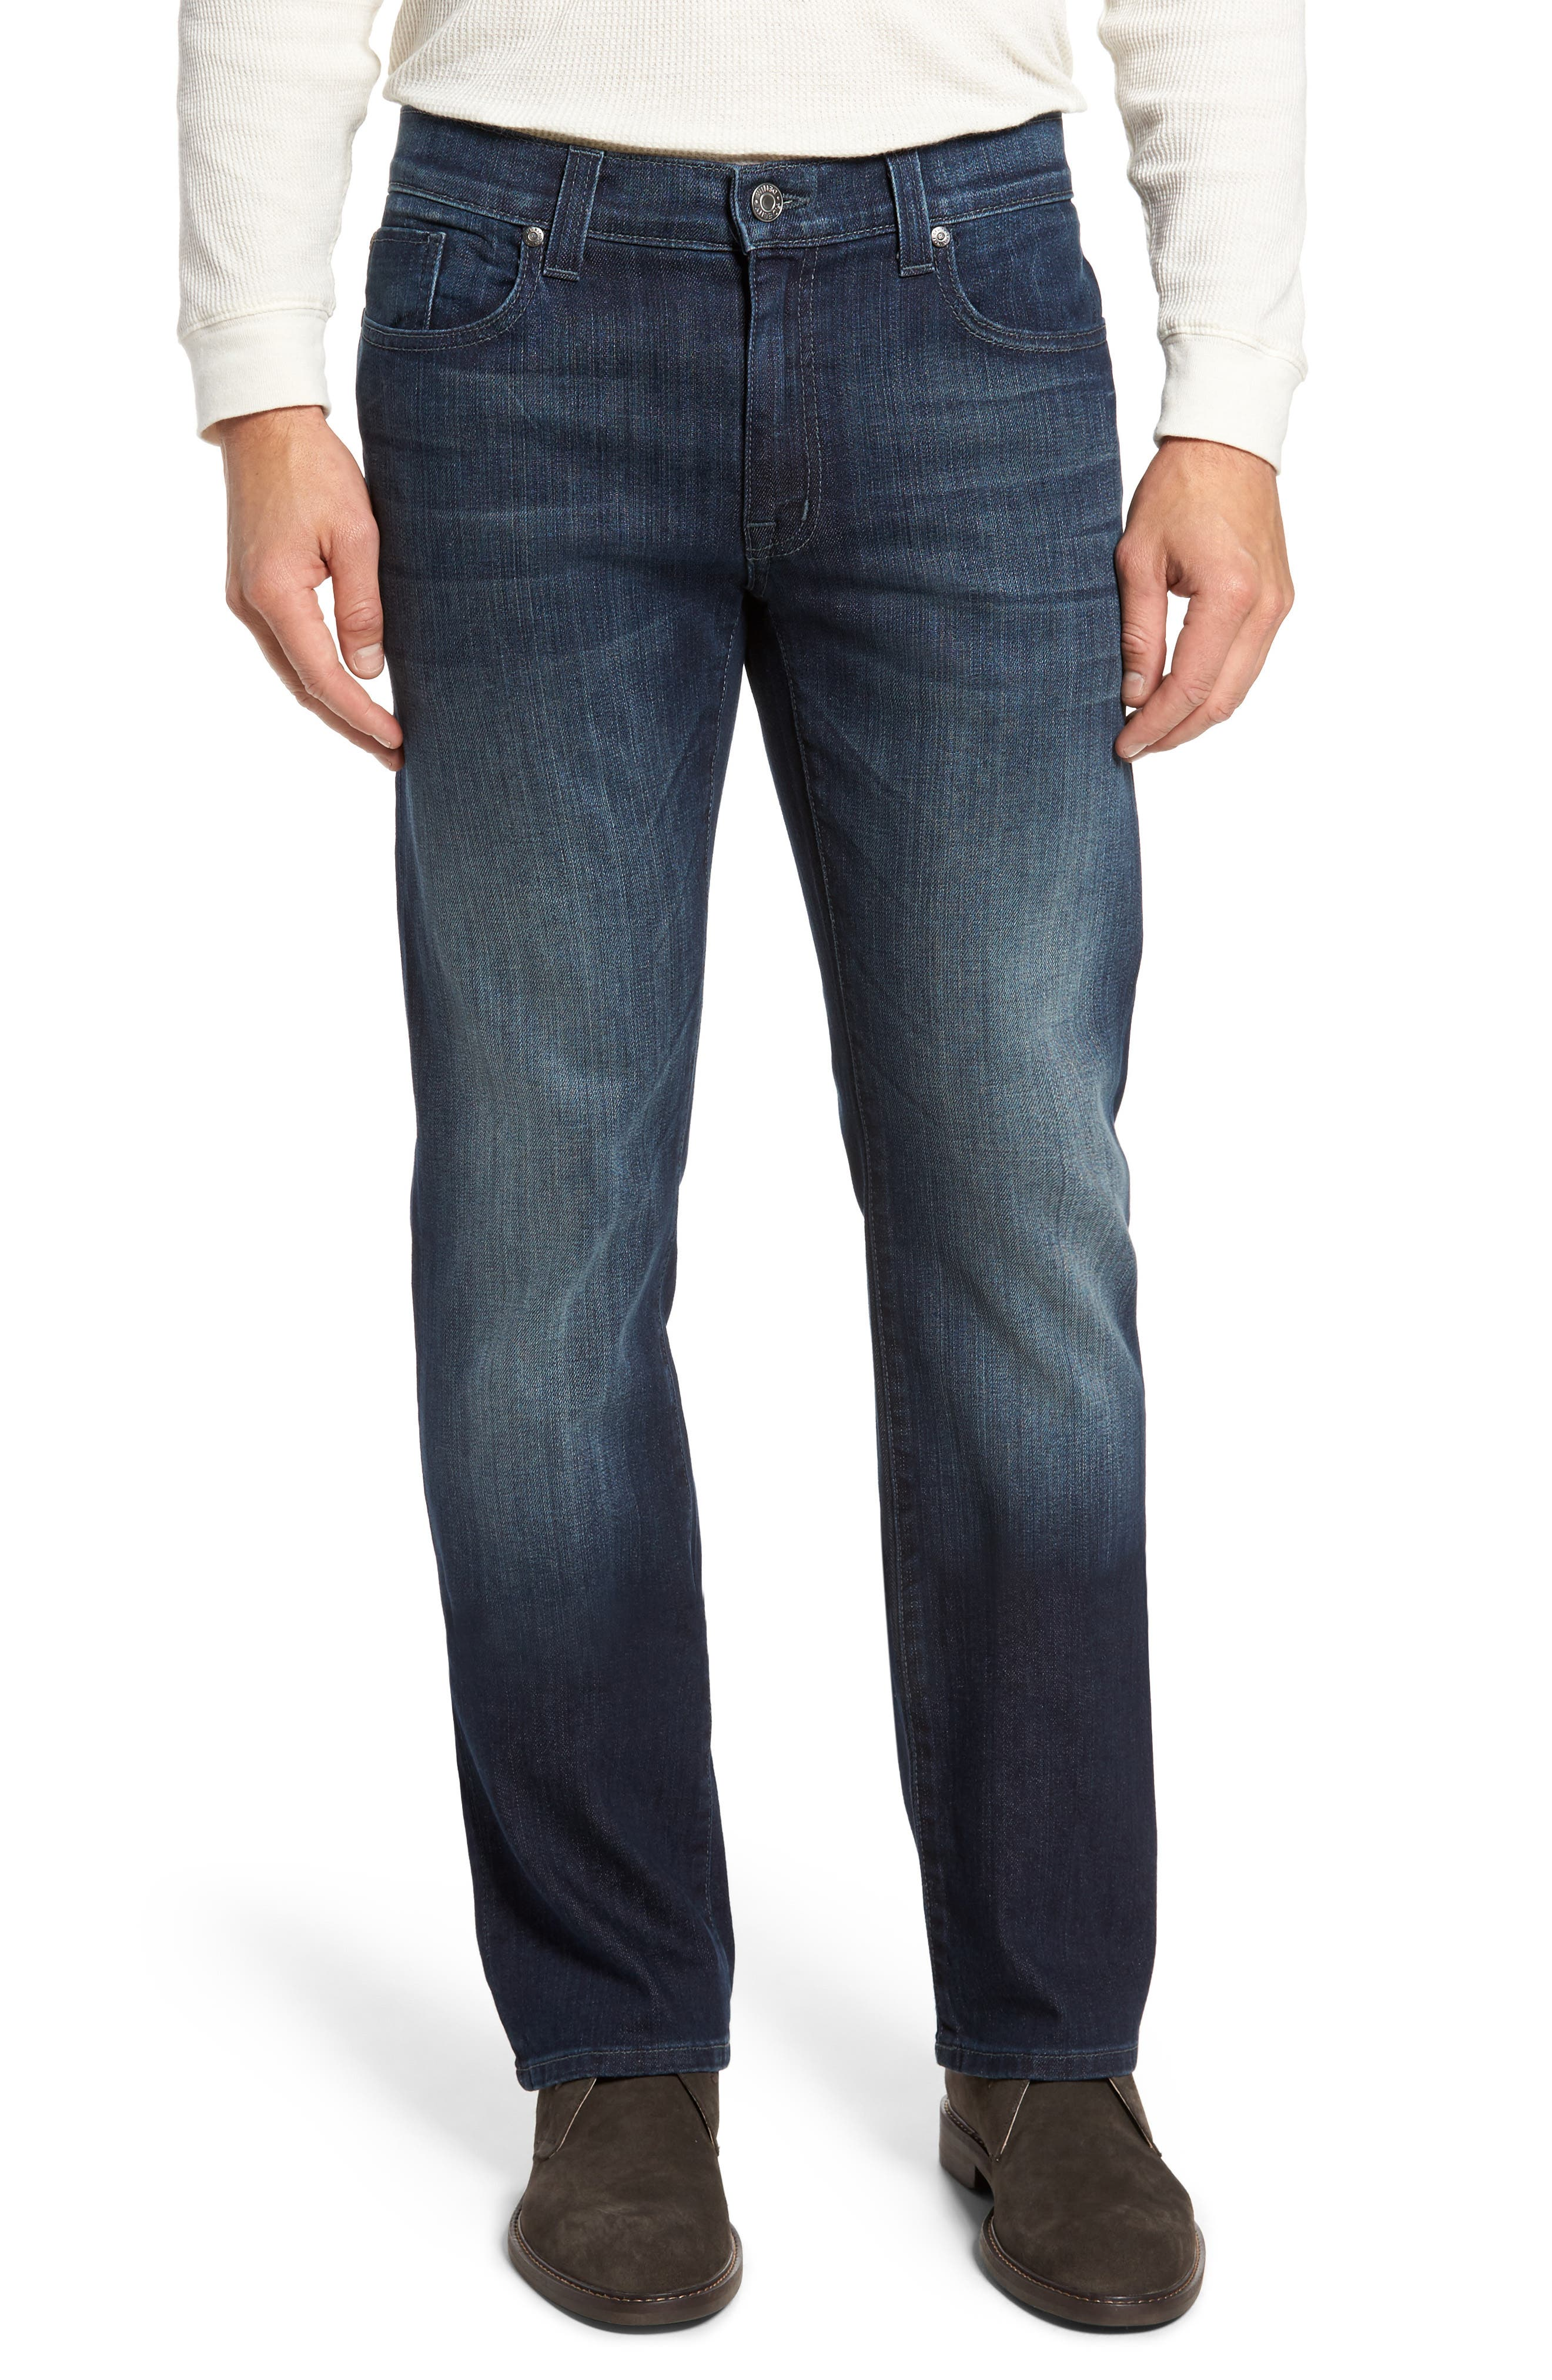 50-11 Relaxed Fit Jeans,                             Main thumbnail 1, color,                             Militia Blue